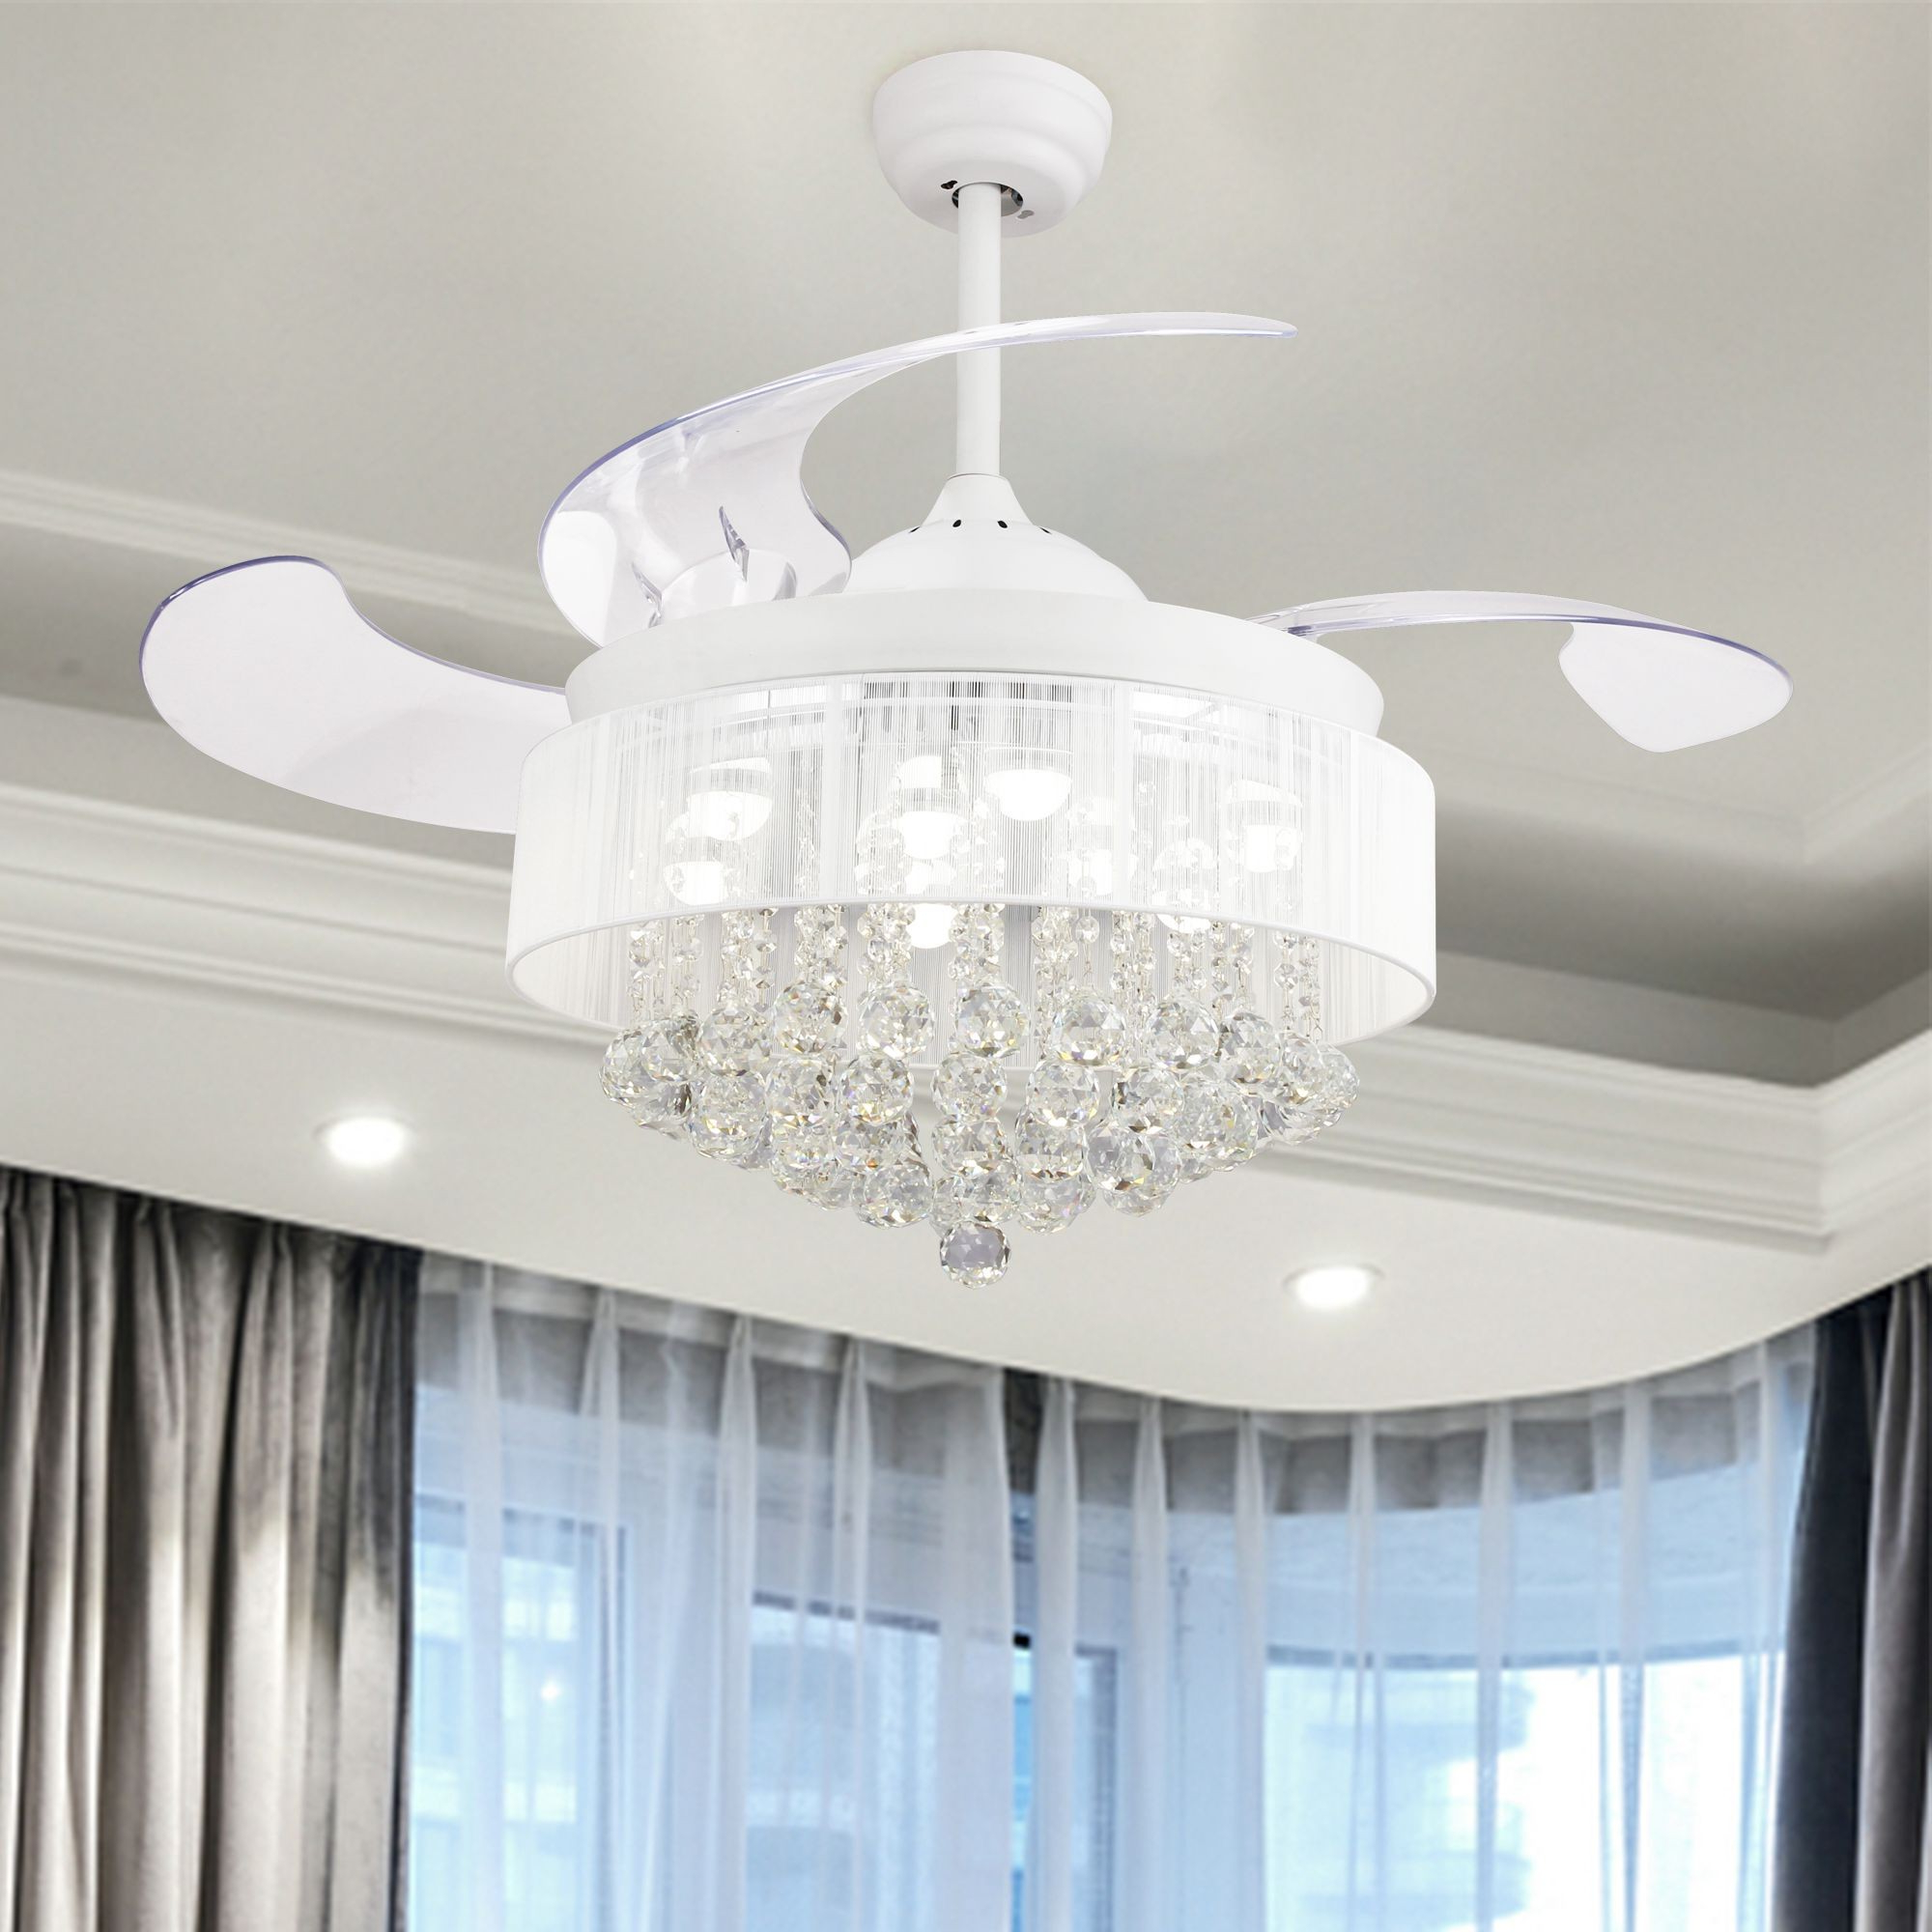 """Most Recent 46"""" Broxburne Modern Crystal Retractable Ceiling Fan With Led Lights And  Remote Control, White Intended For Broxburne 4 Blade Led Ceiling Fans With Remote (View 16 of 20)"""